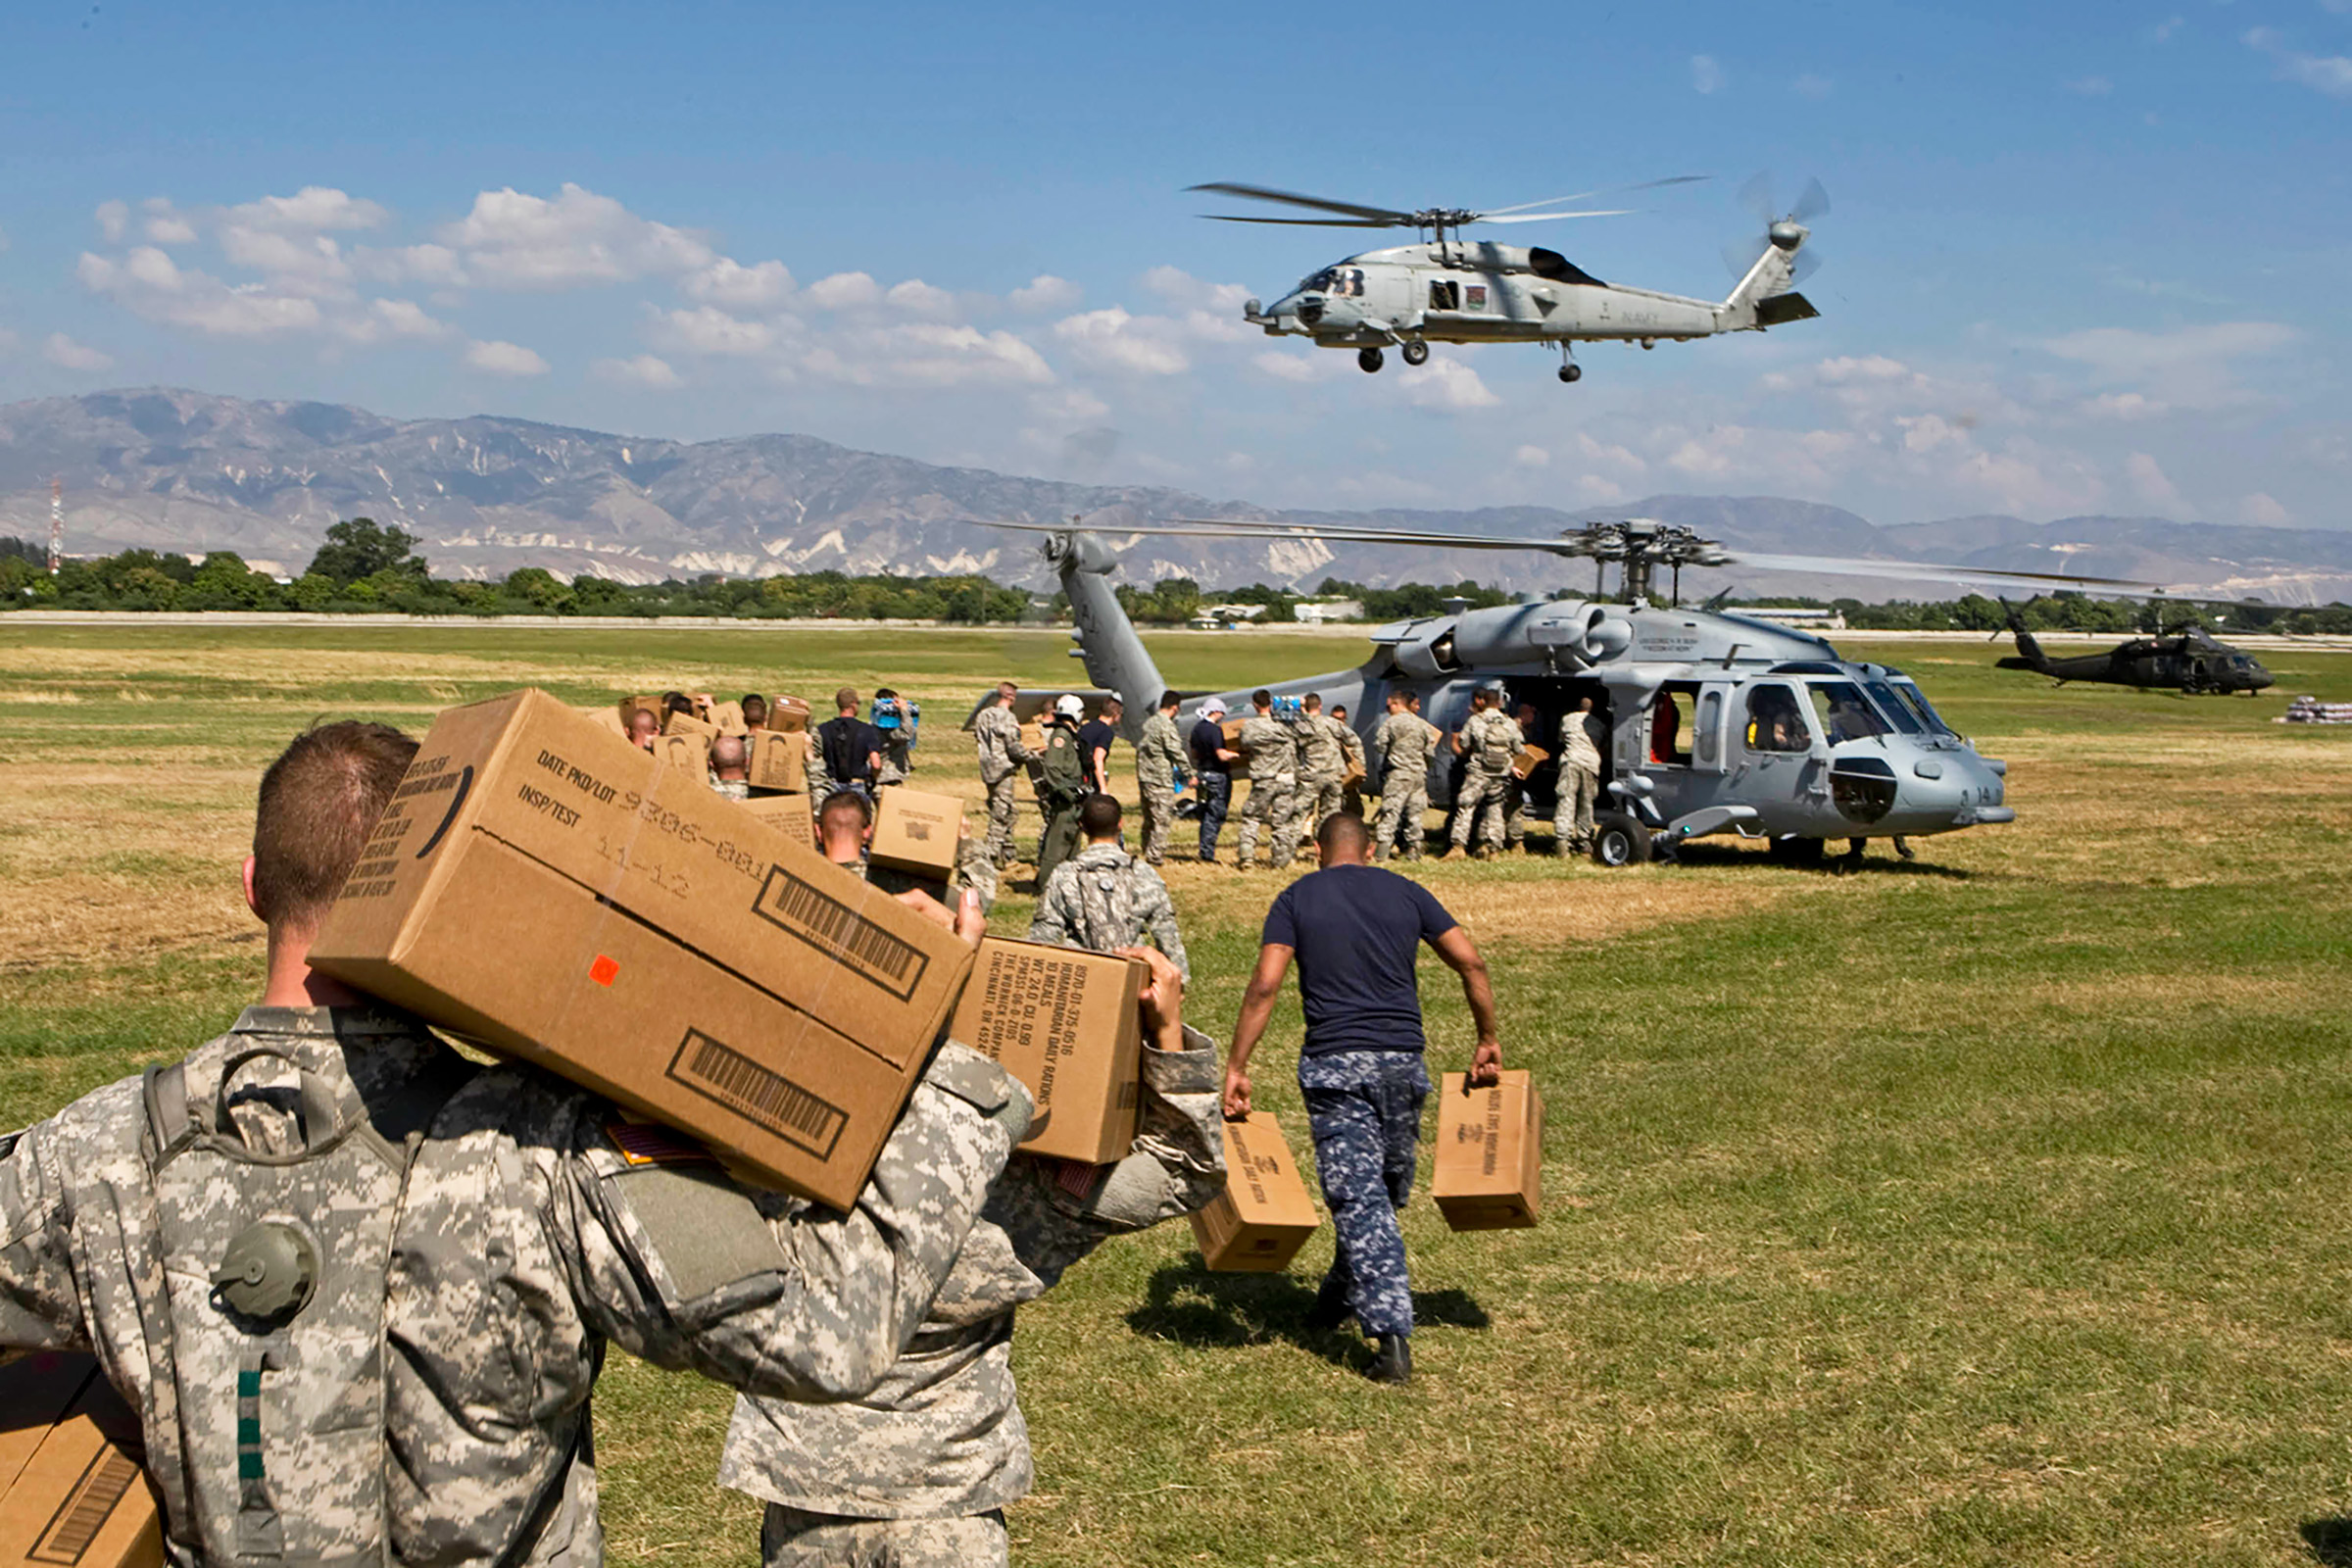 U.S. soldiers load aid onto a helicopter in January 2010 in Port-au-Prince, Haiti, after a devastating earthquake